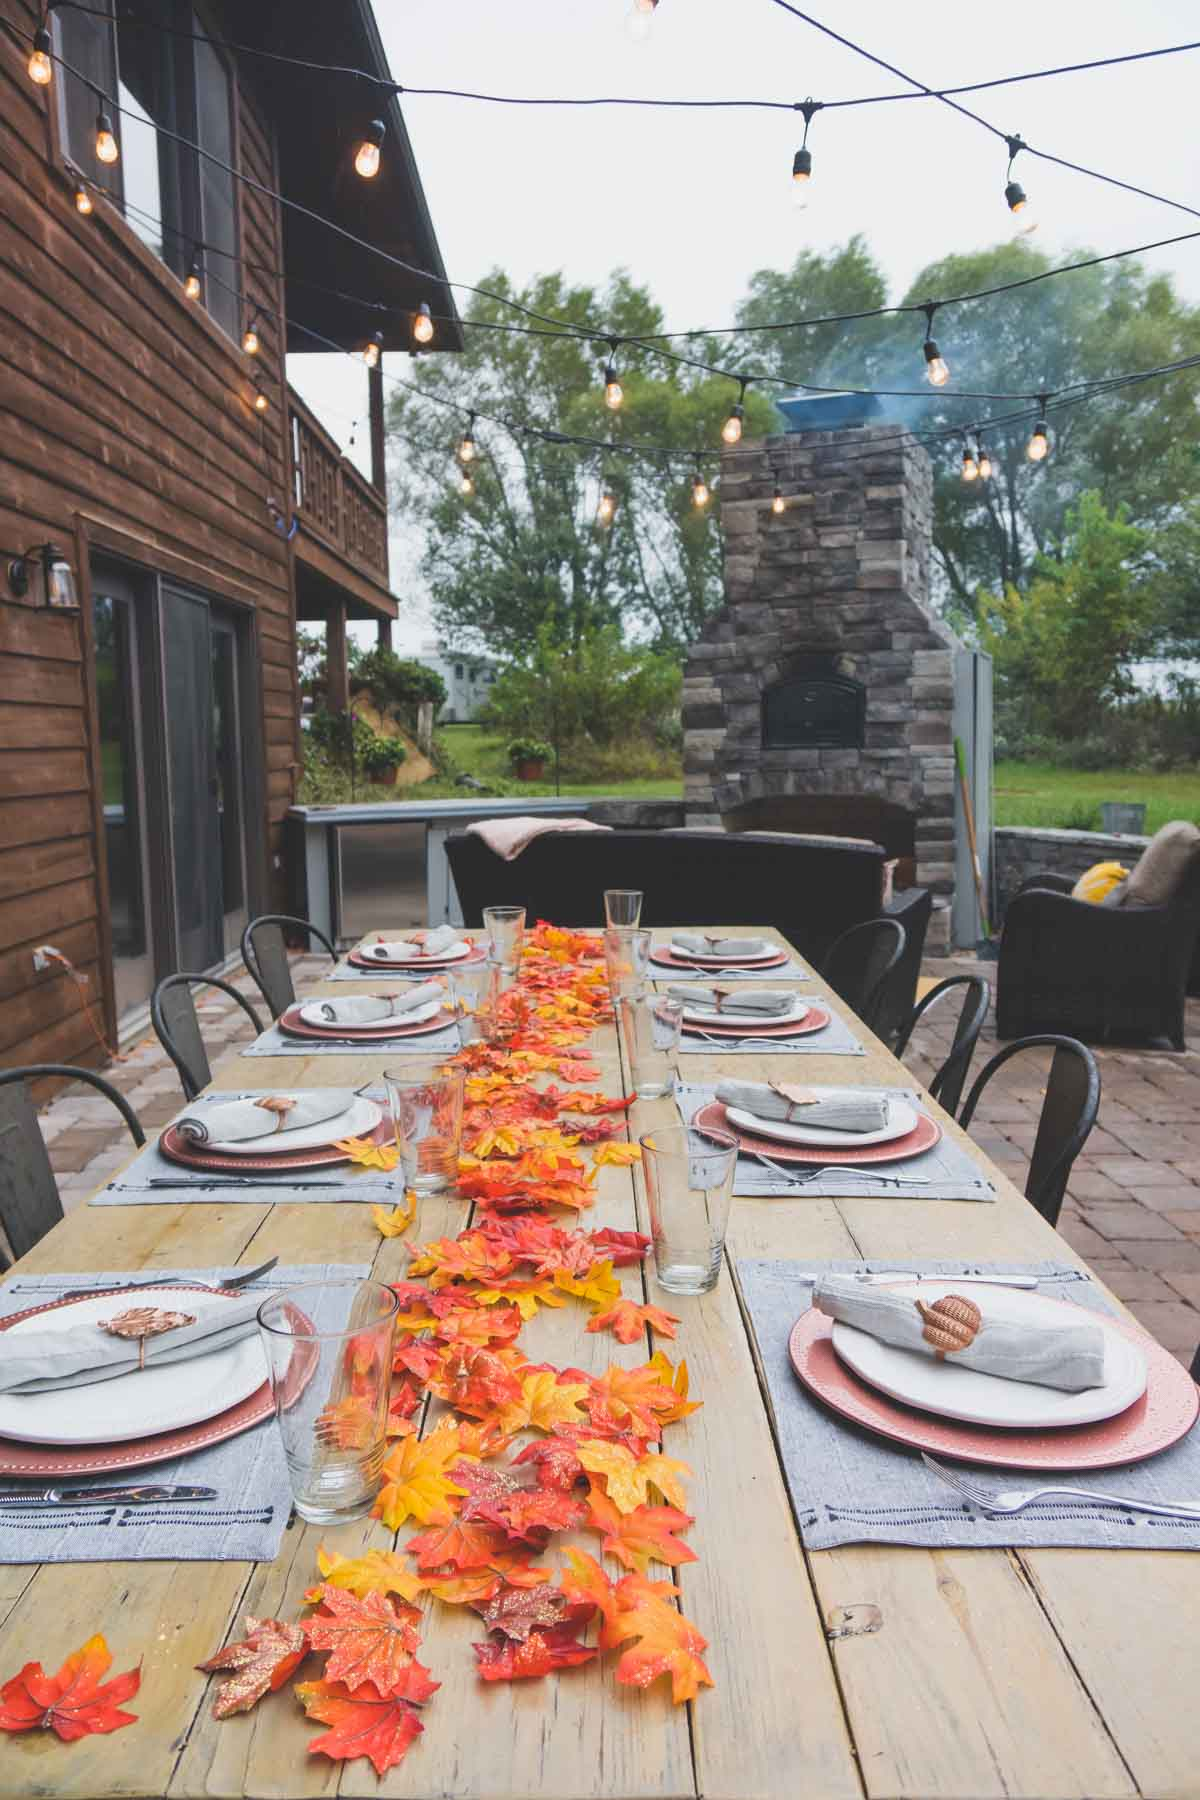 A large table with fall place settings in an outdoor entertaining area